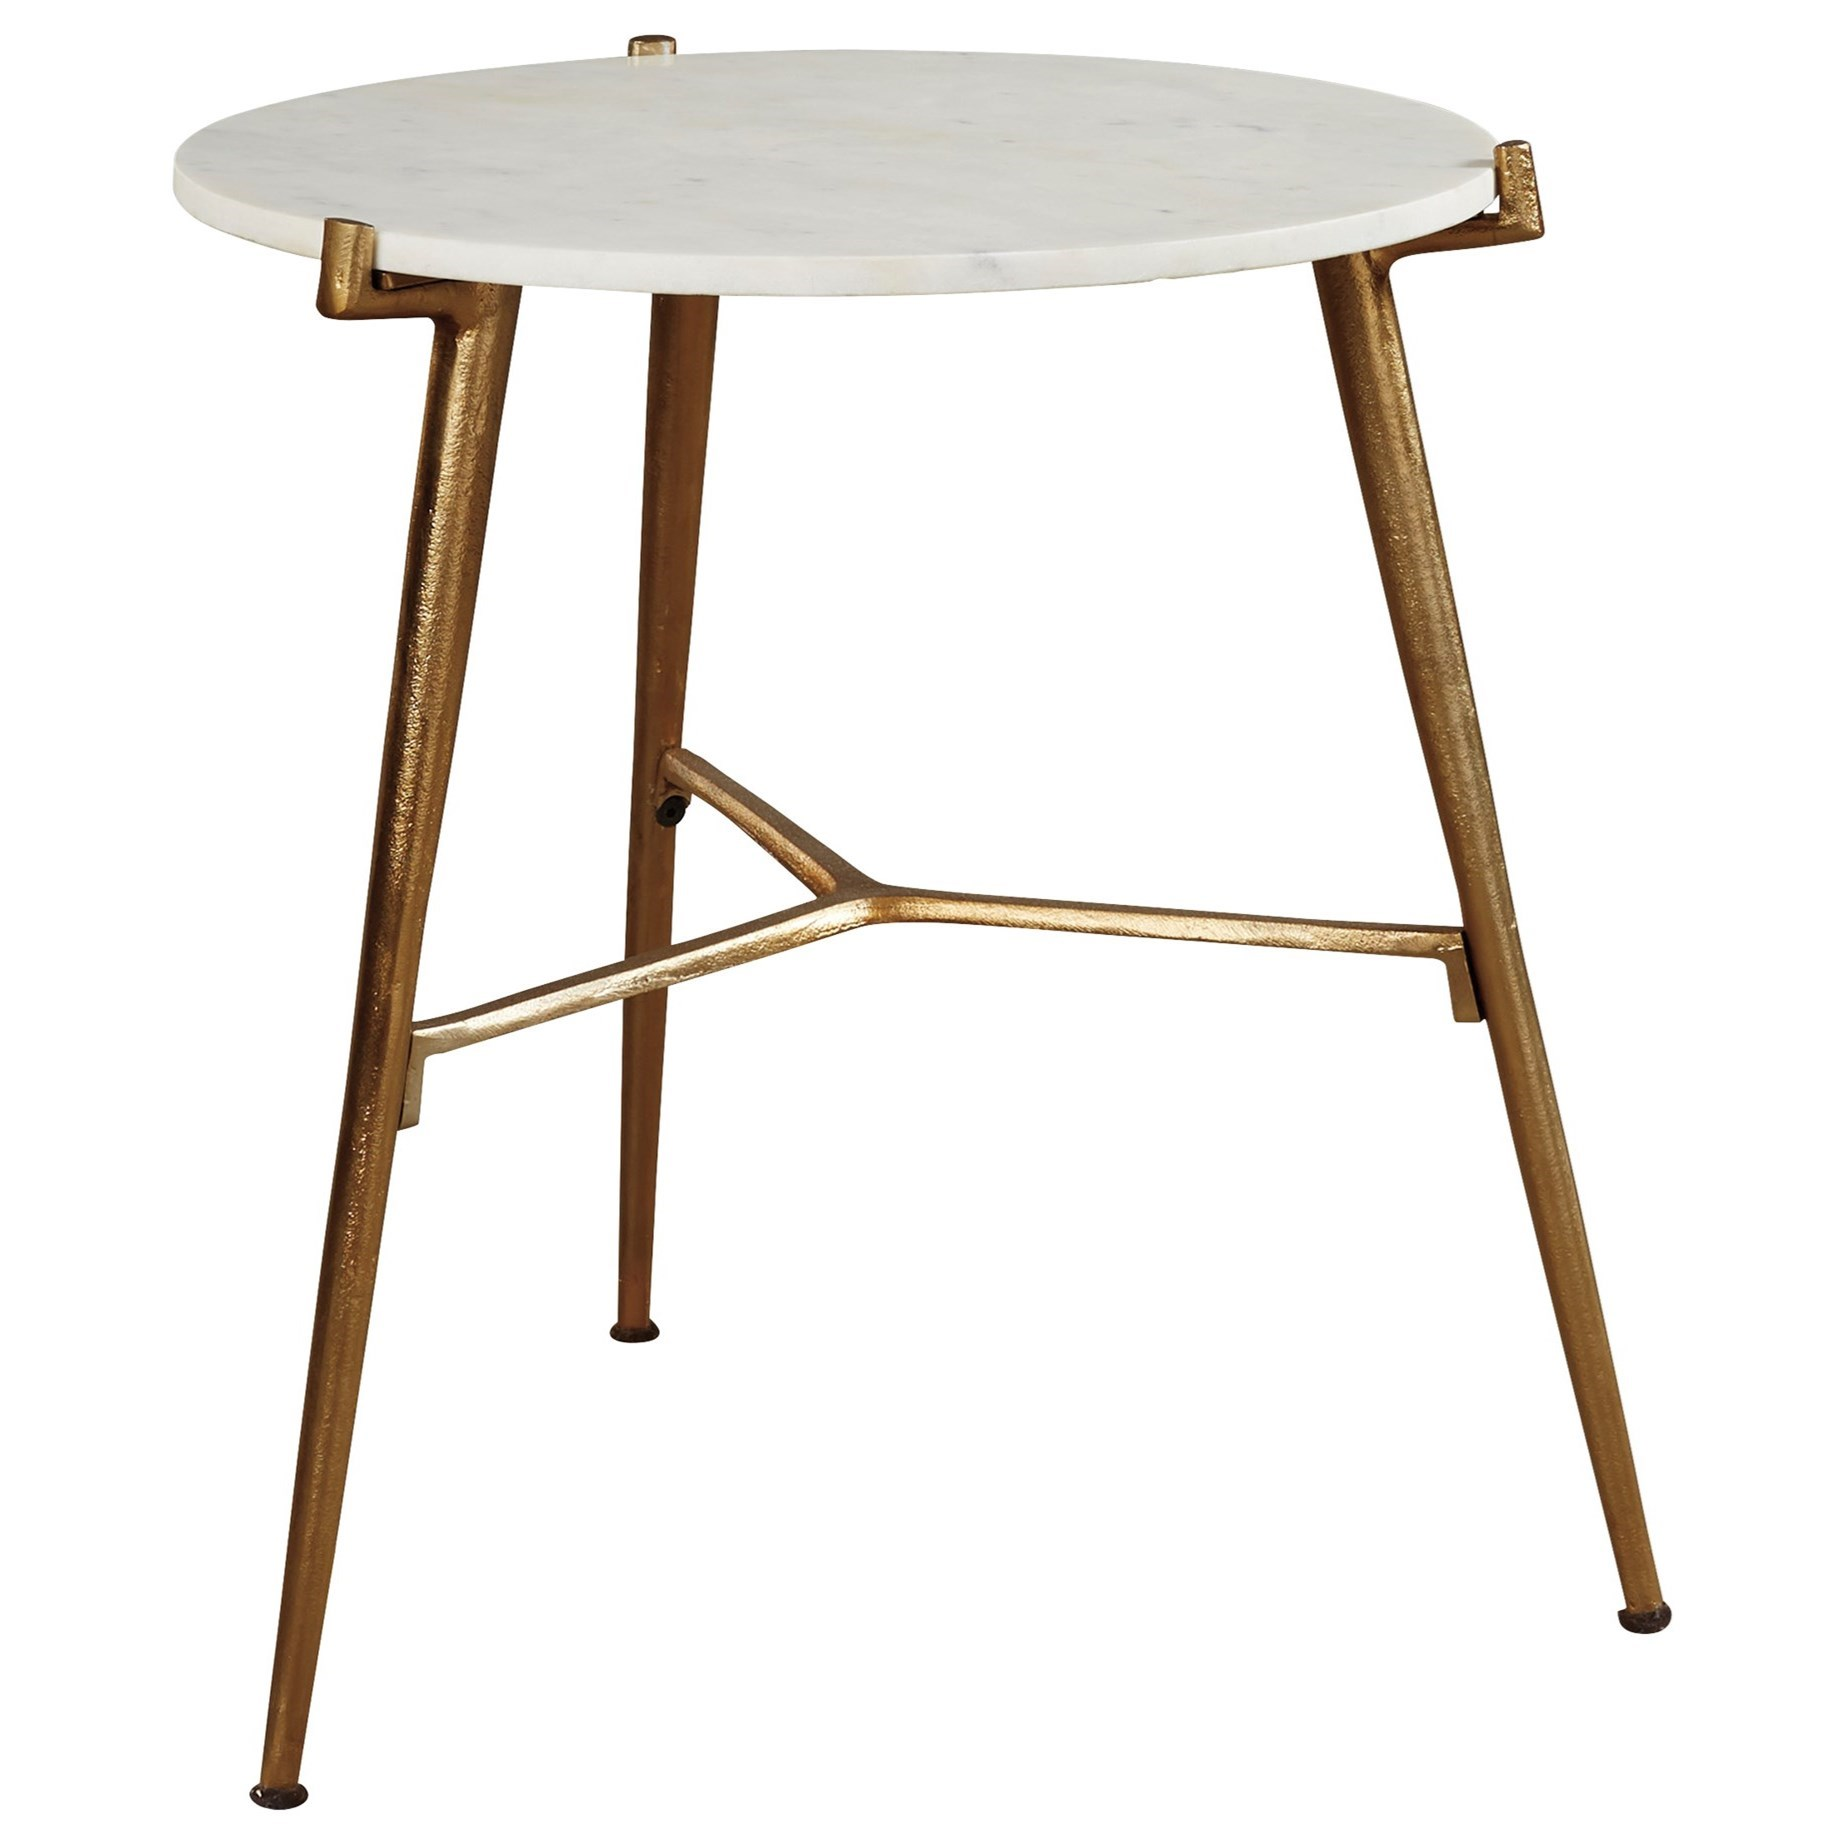 Contemporary Accent Table with White Marble Top and Gold Finish Base